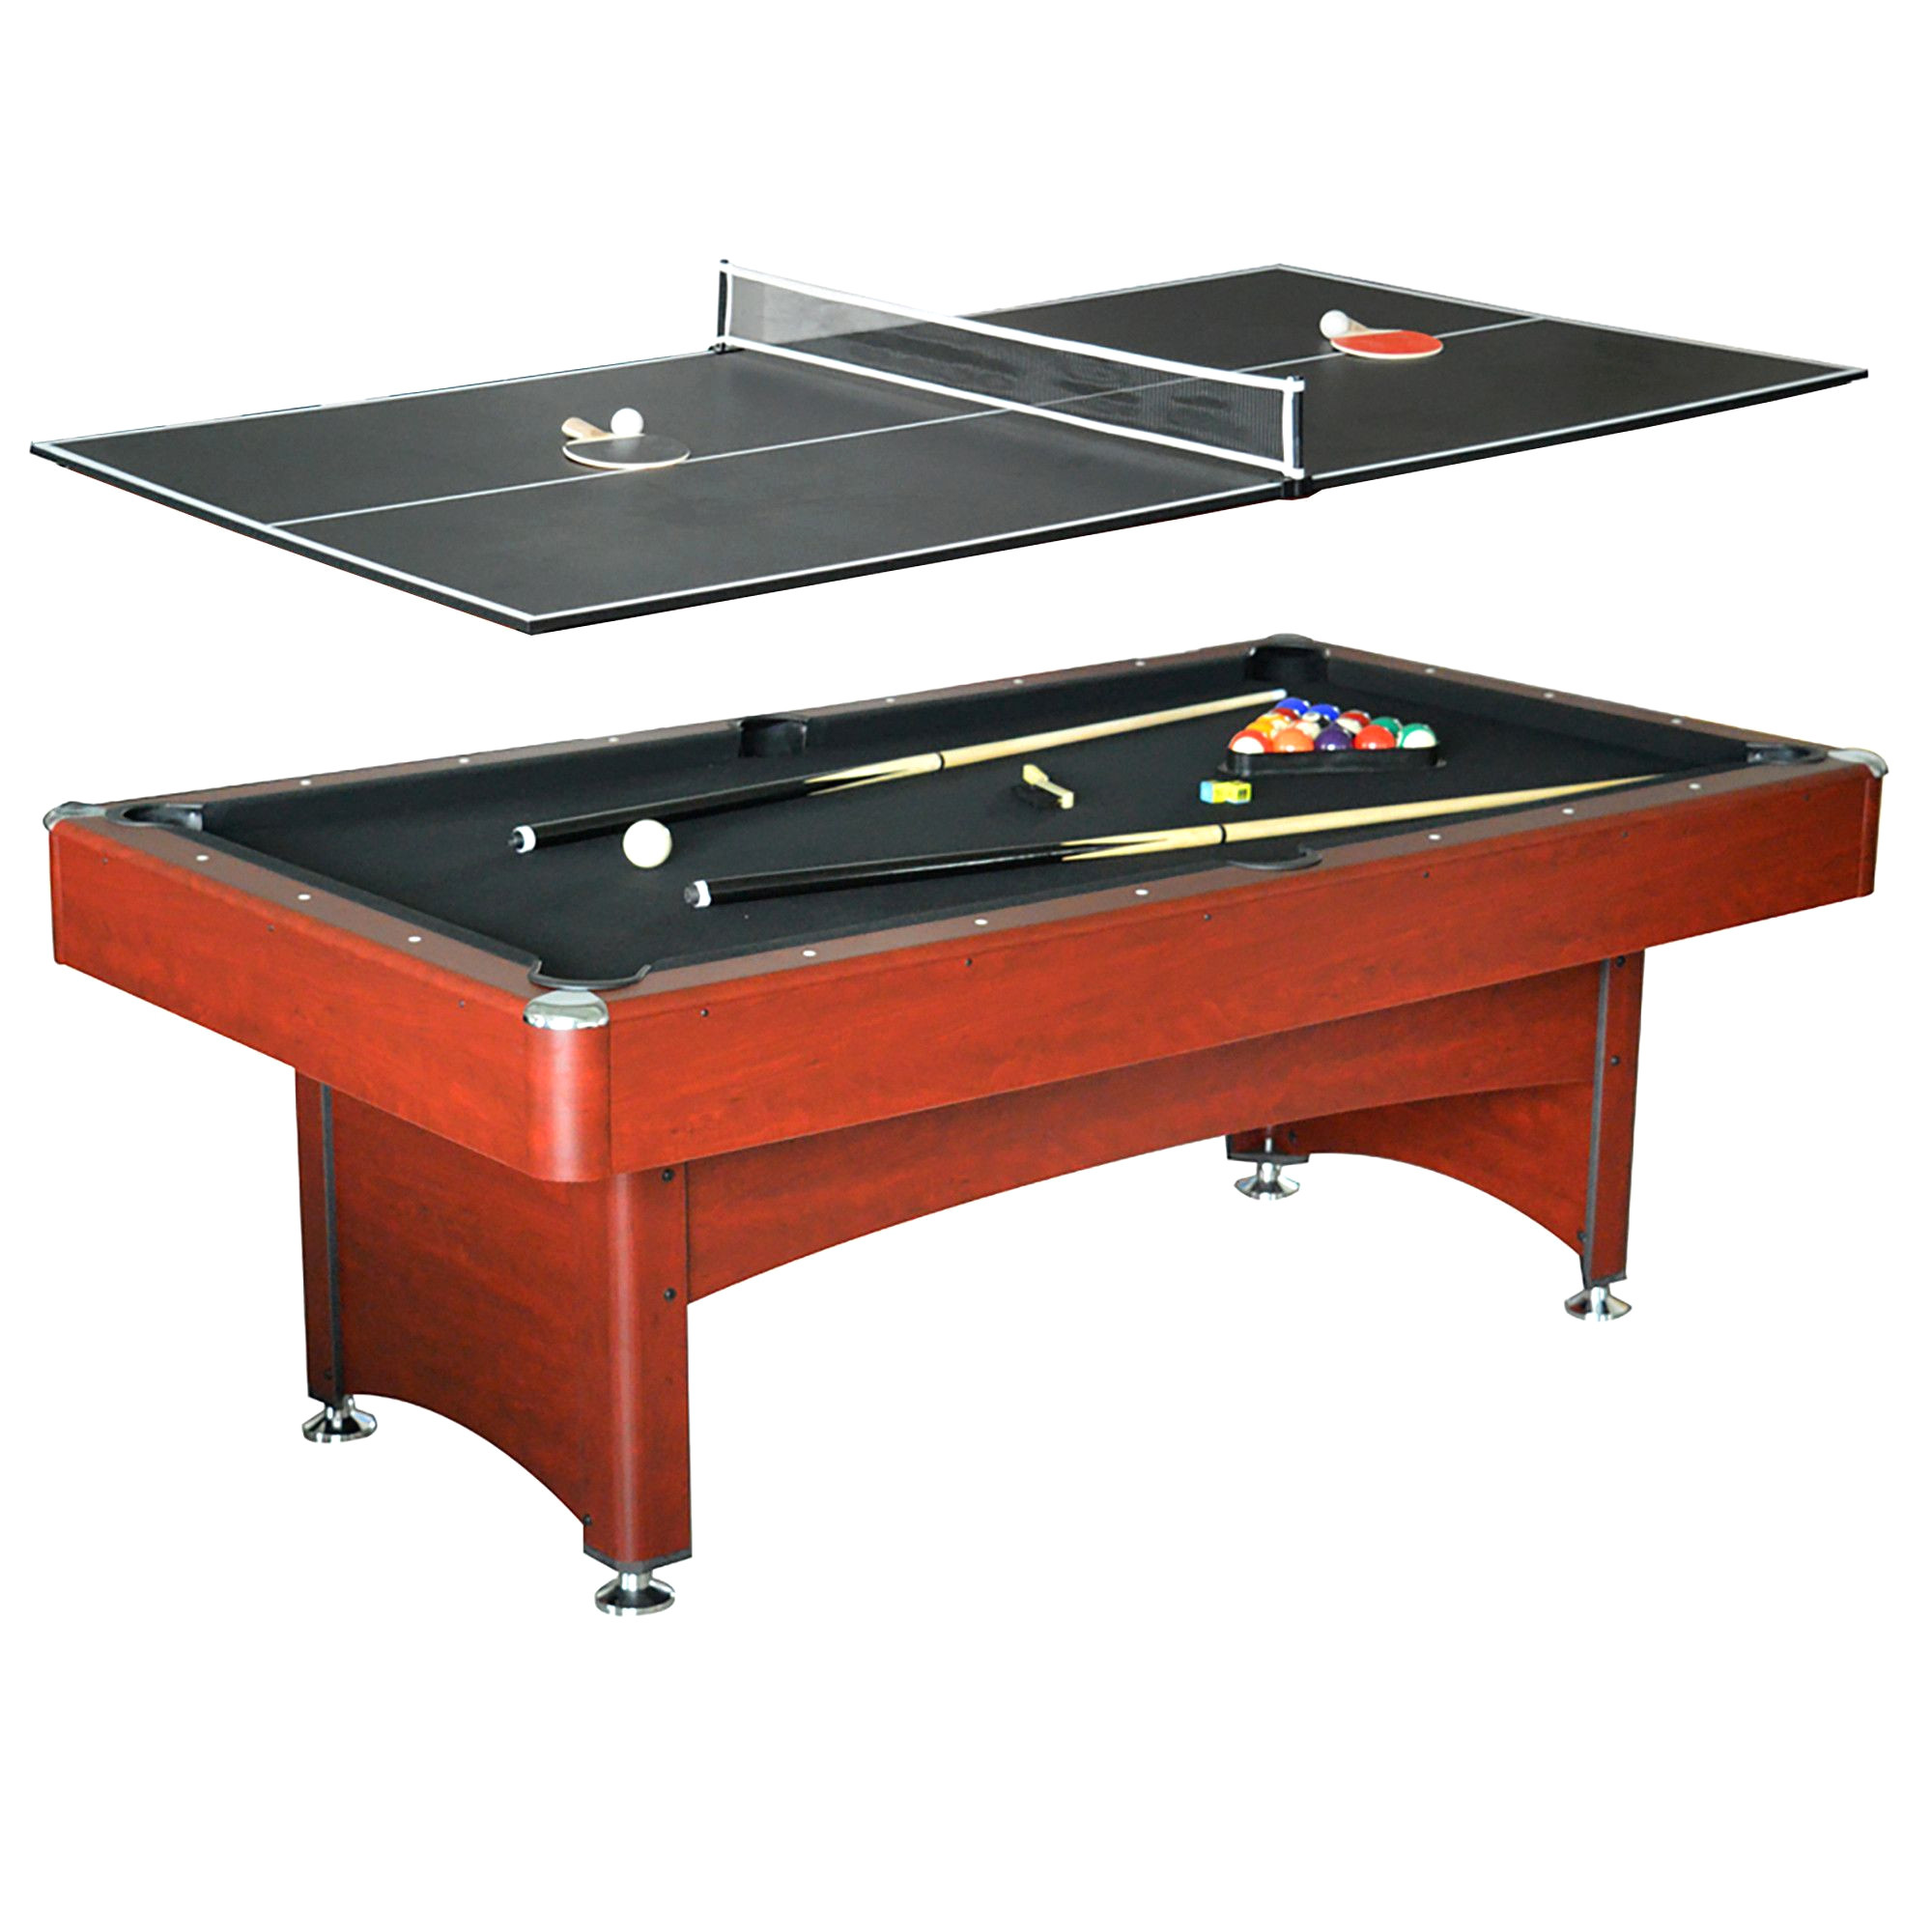 pool table schon carmelli ng4023 bristol 7 ft pool table w table tennis top